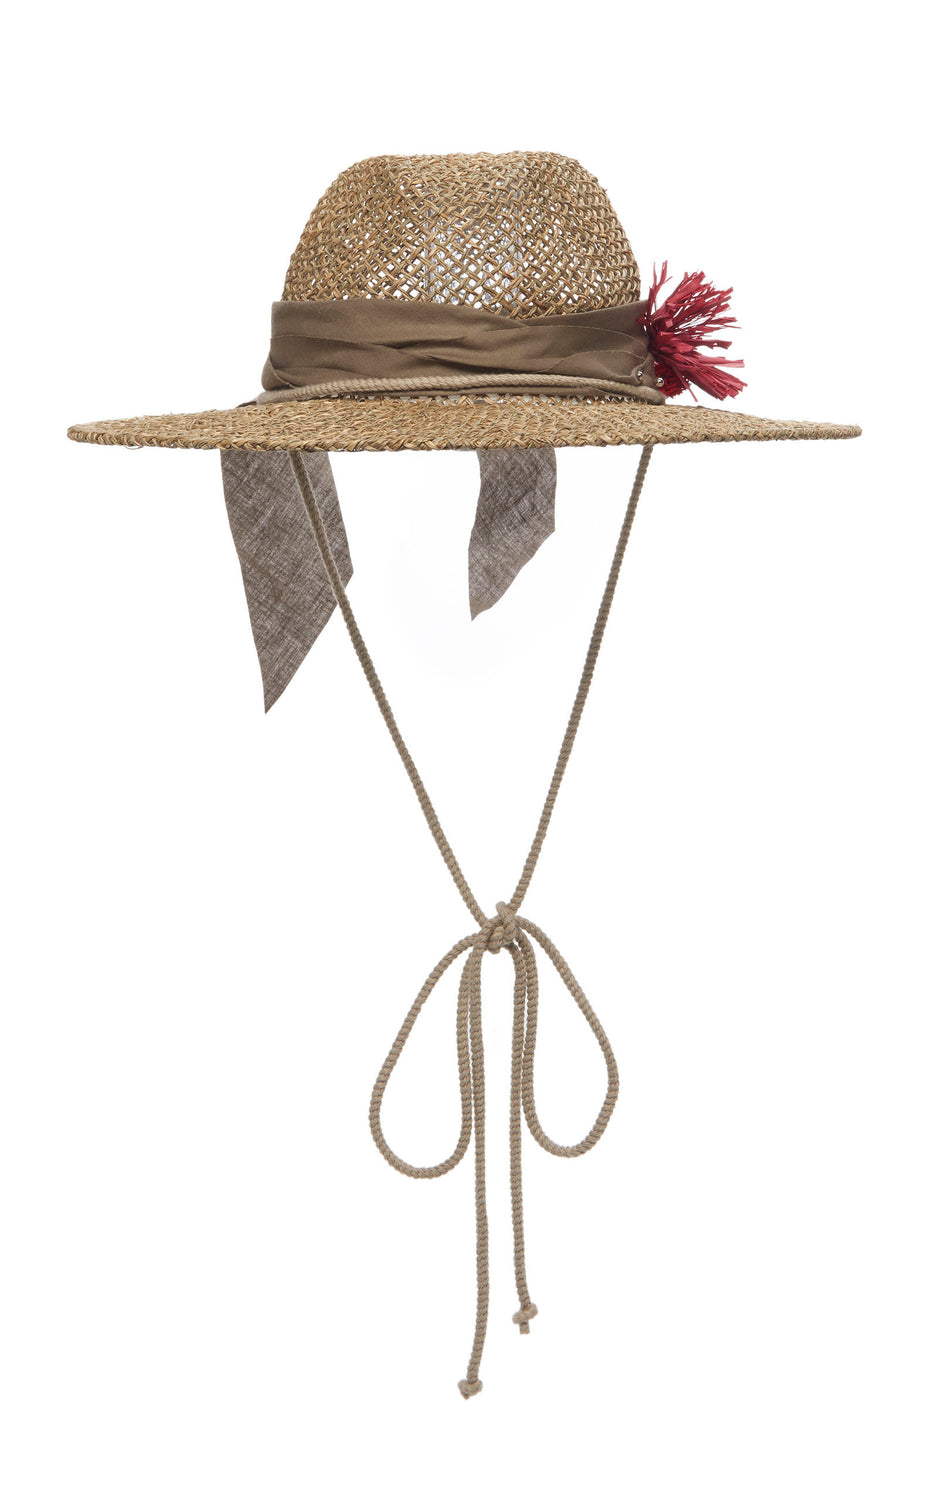 Straw Olive Fedora Hat with flower brooch and tie - Hats - Ruslan Baginskiy - SELFIE STORE BARCELONA S.C.P.